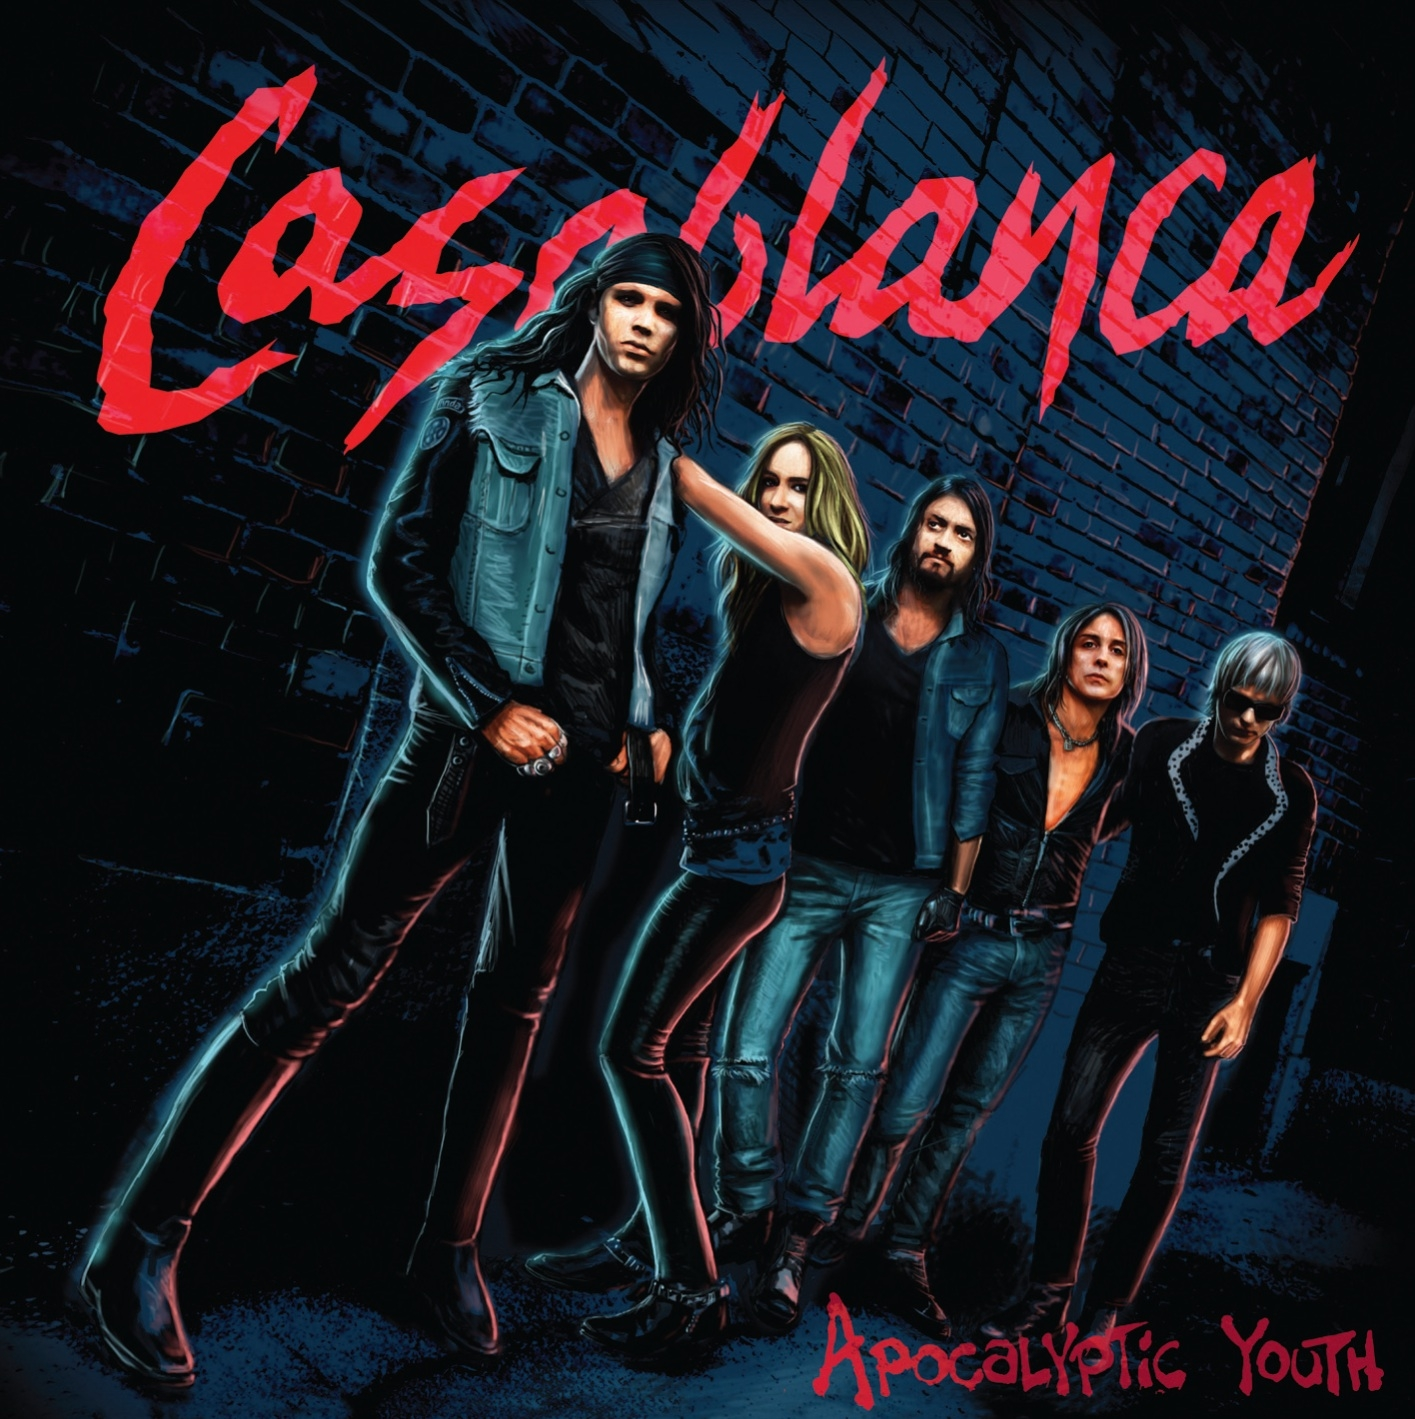 Casablanca – Apocalyptic Youth